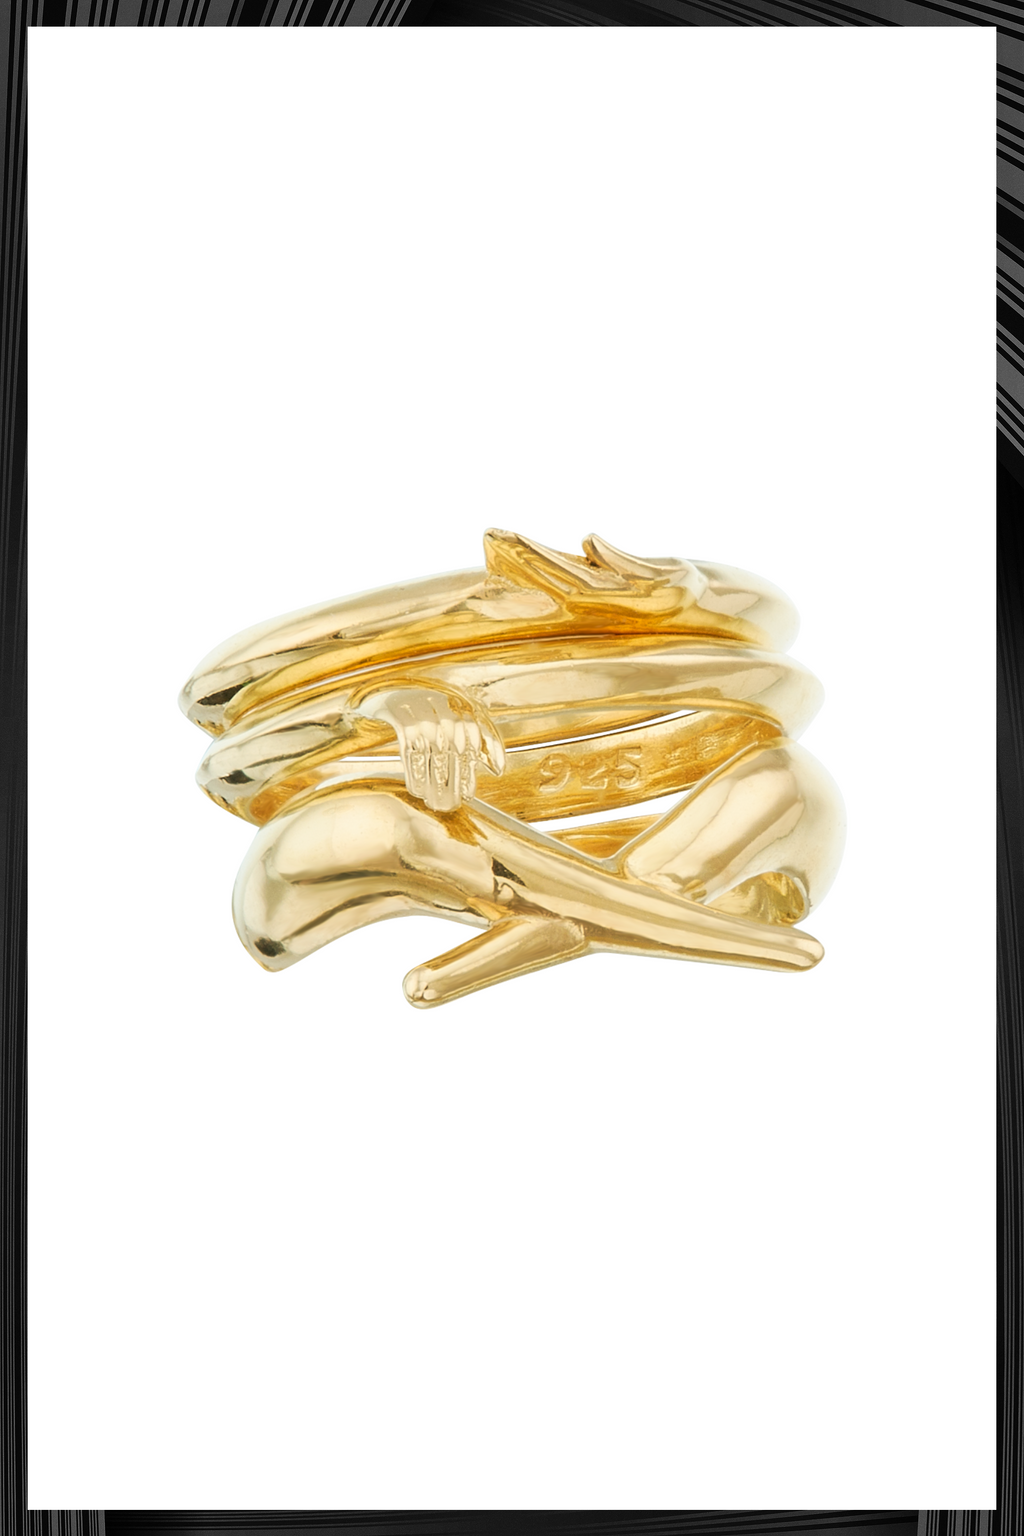 Gold Meditation Ring | Free Delivery - Quick Shipping